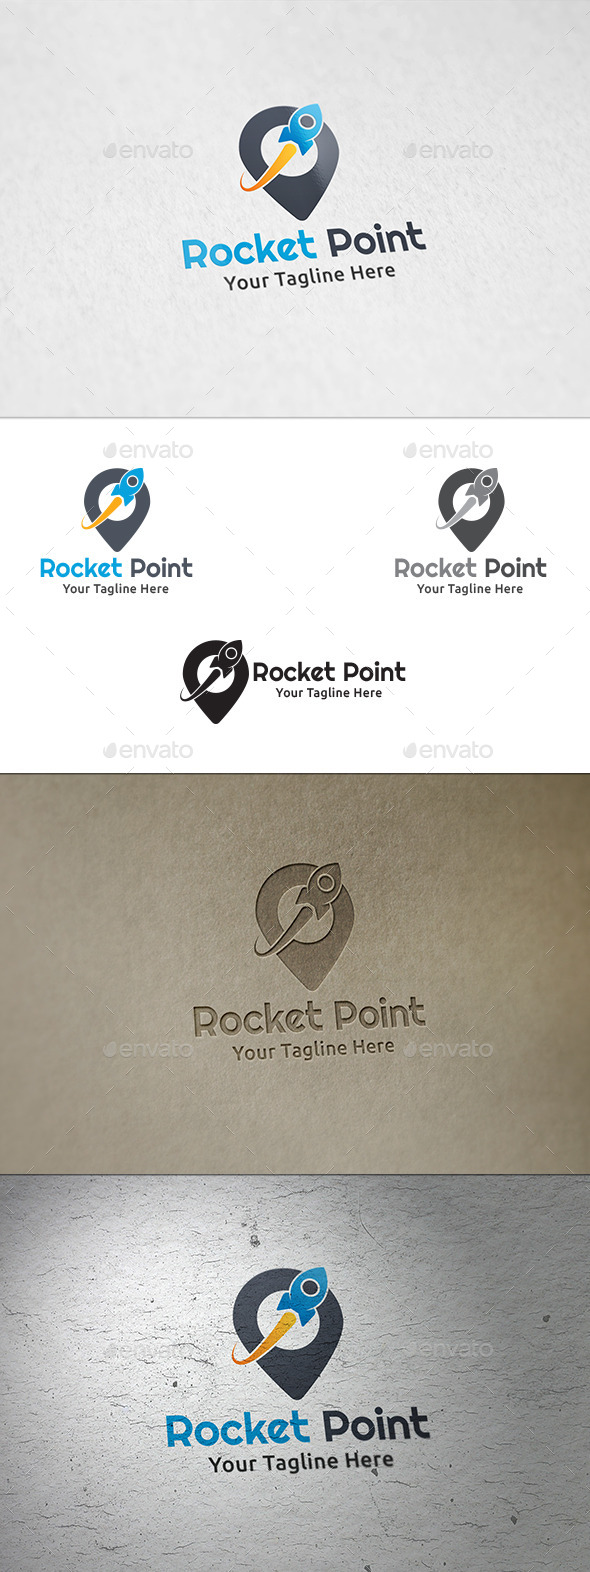 GraphicRiver Rocket Point Logo Template 8825491